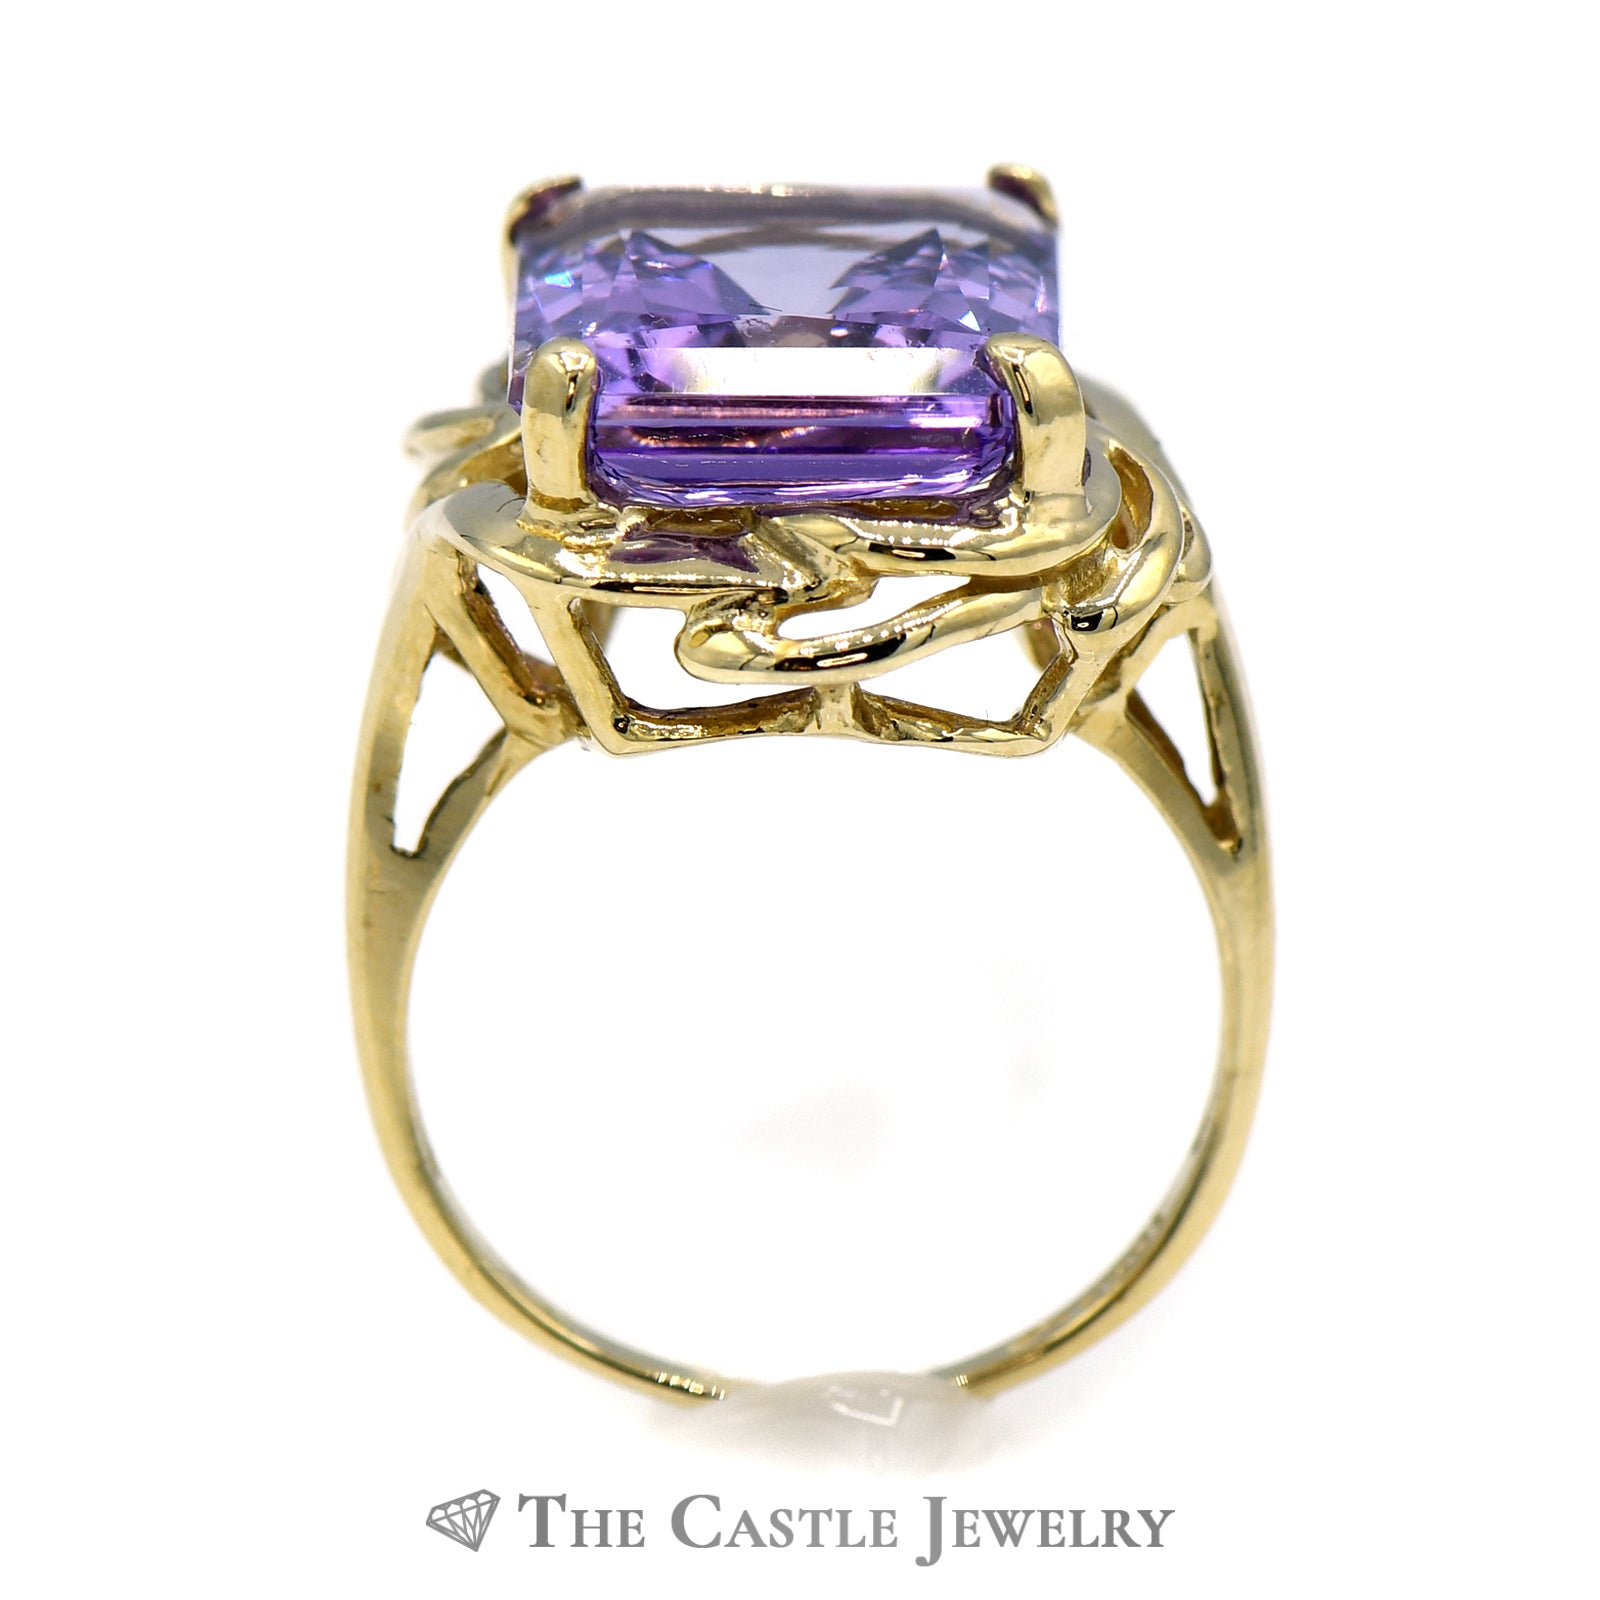 Emerald Cut Amethyst Ring with Swirl Designed 10k Yellow Gold Mounting-1